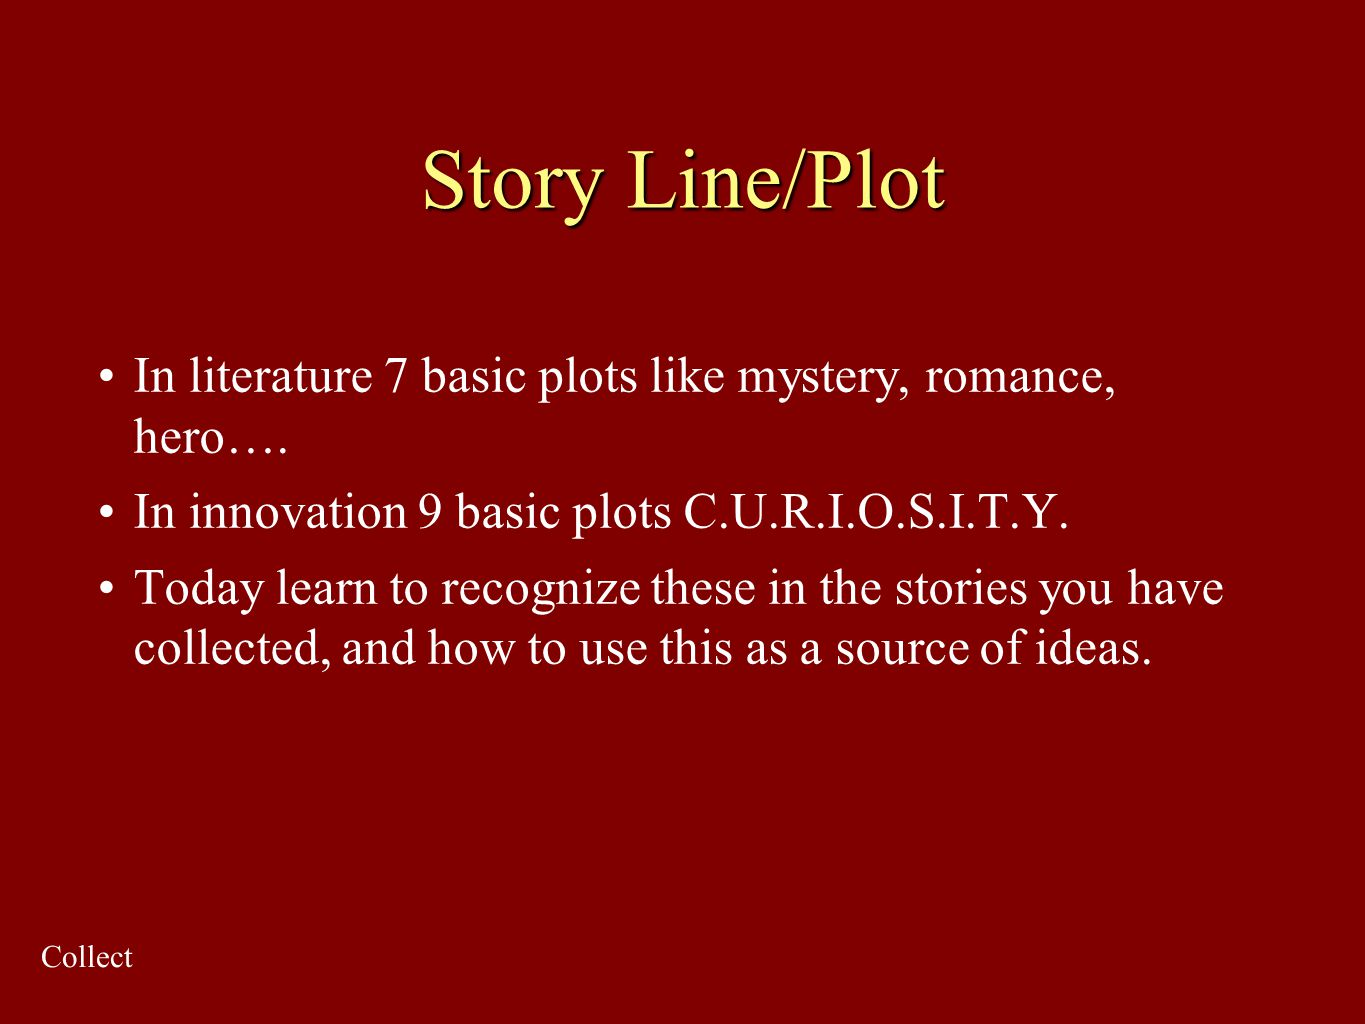 Story Line/Plot In literature 7 basic plots like mystery, romance, hero…. In innovation 9 basic plots C.U.R.I.O.S.I.T.Y. Today learn to recognize thes